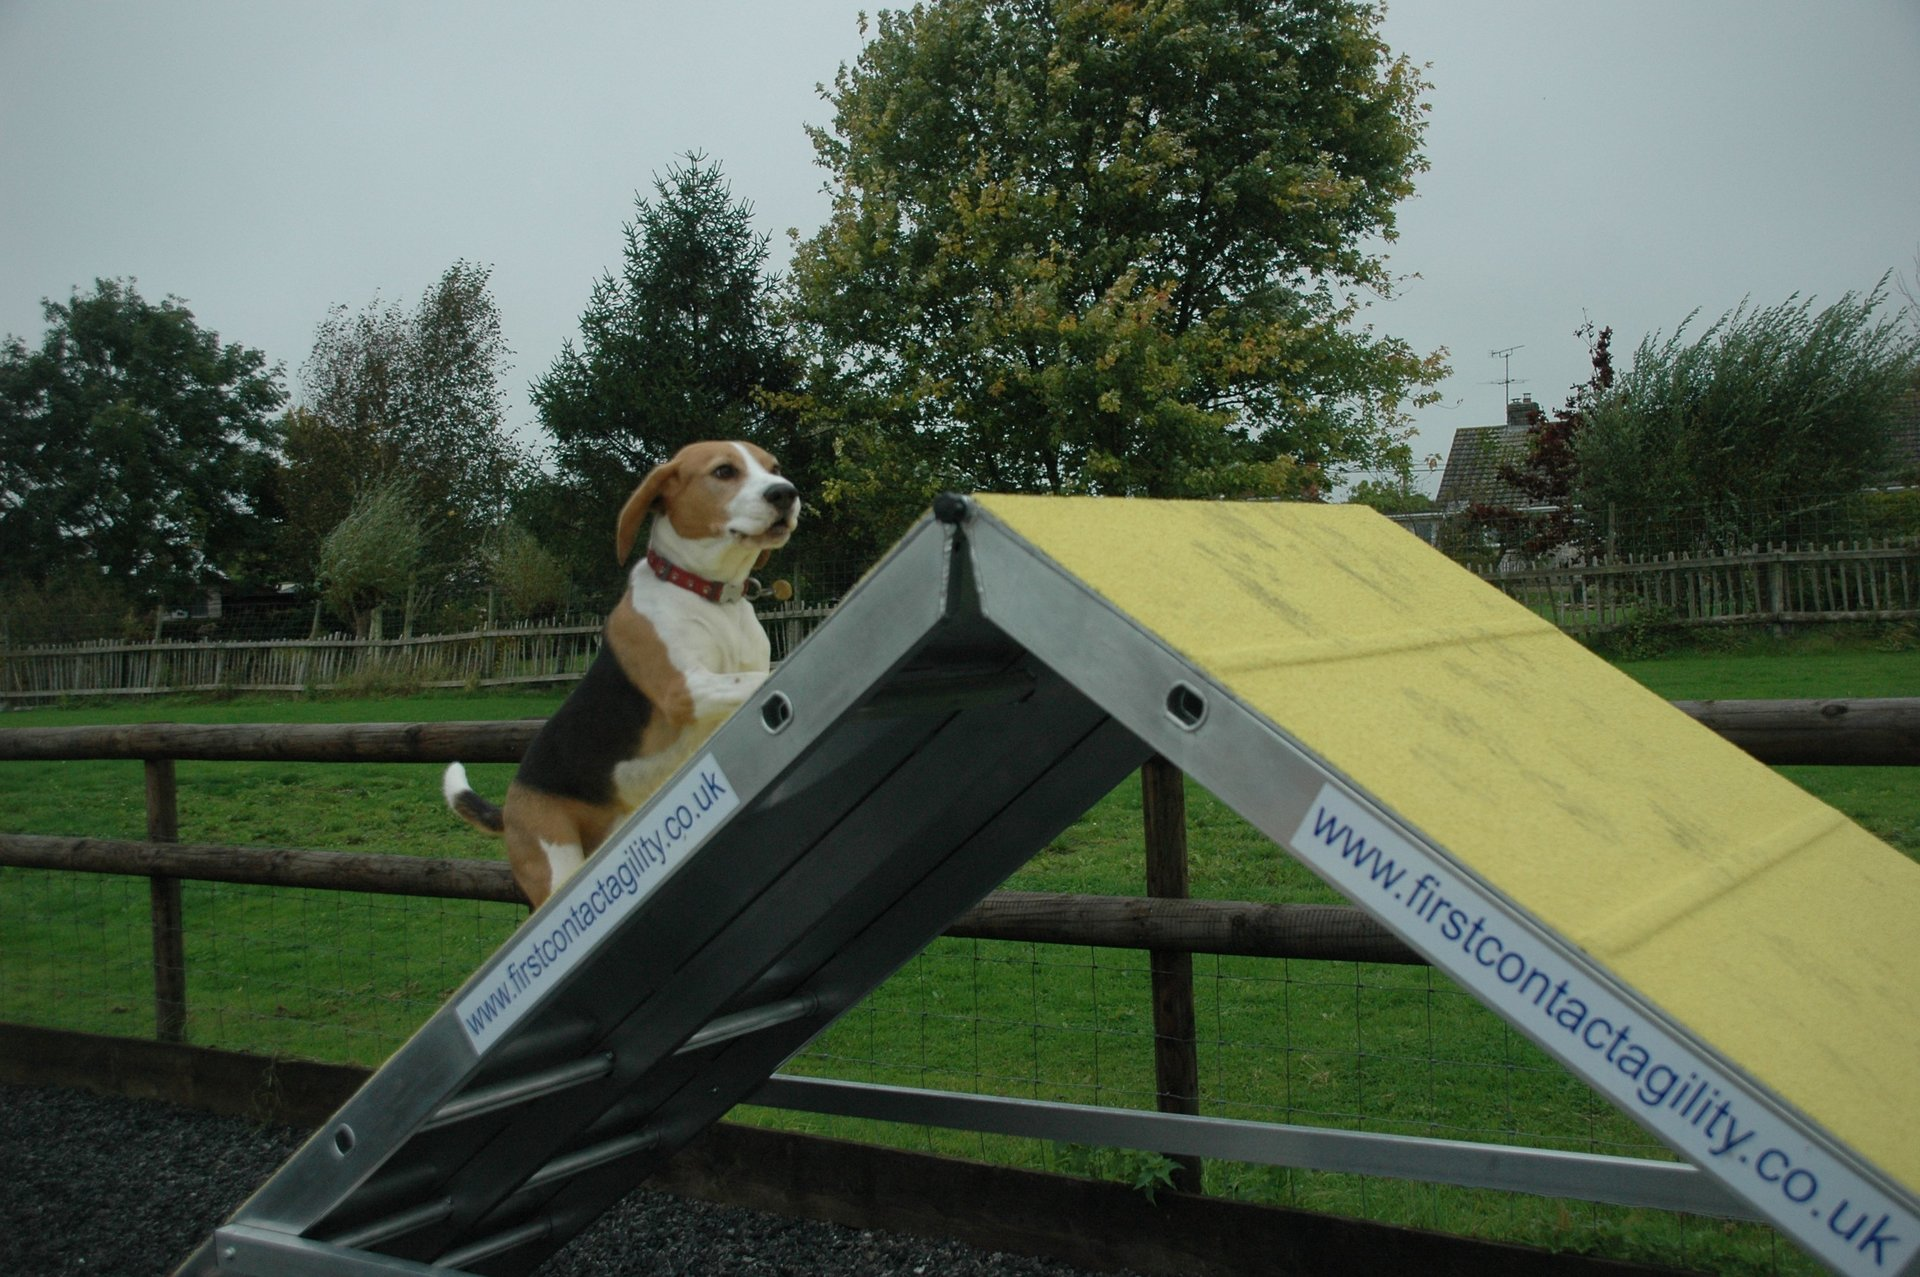 Dog training classes for obedience & dog agility